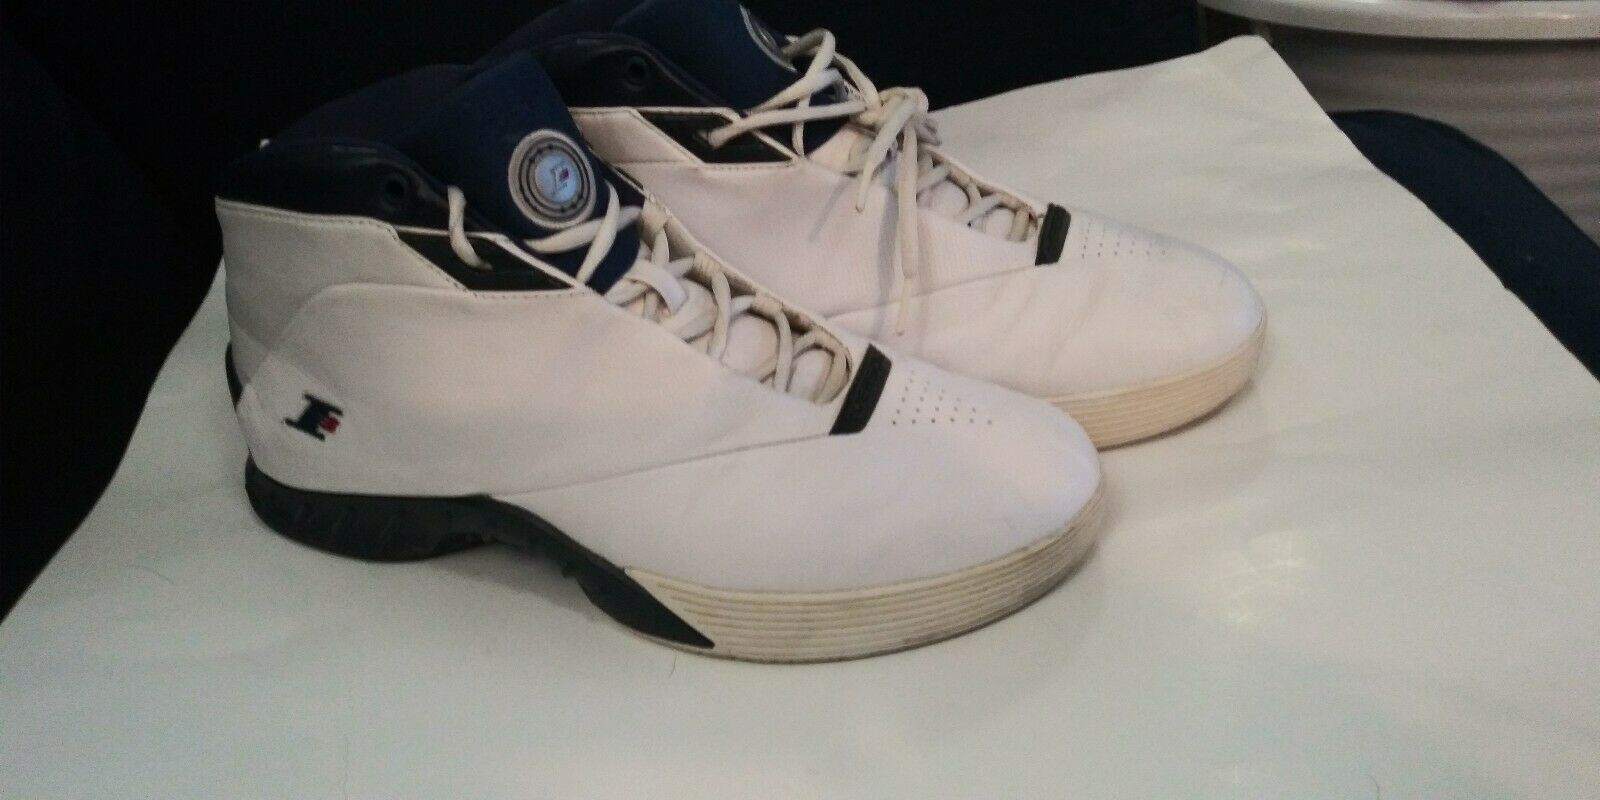 big sale be7c9 da0e1 Reebok I3 Men s Answer Allen Iverson shoes SZ 12 White Philly Basketball  4-99655 nzxyvs10290-Men s Trainers